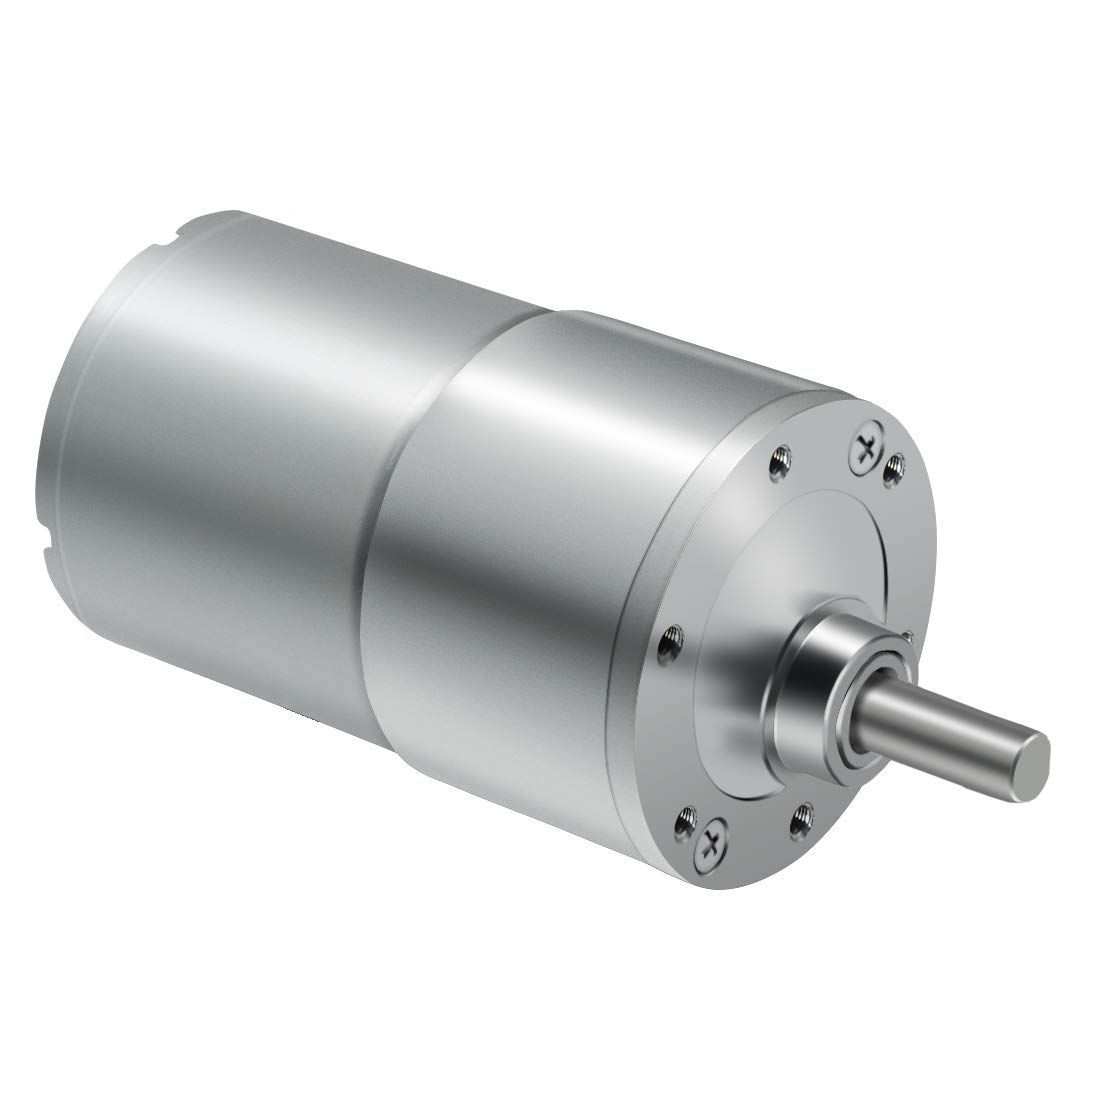 LMioEtool DC Electric Gear Motor Eccentric Output Shaft 37mm Diameter High Torque Reversible Mini Speed Reduction Geared Motor 24V//1000RPM with Metal Reducer Gearbox